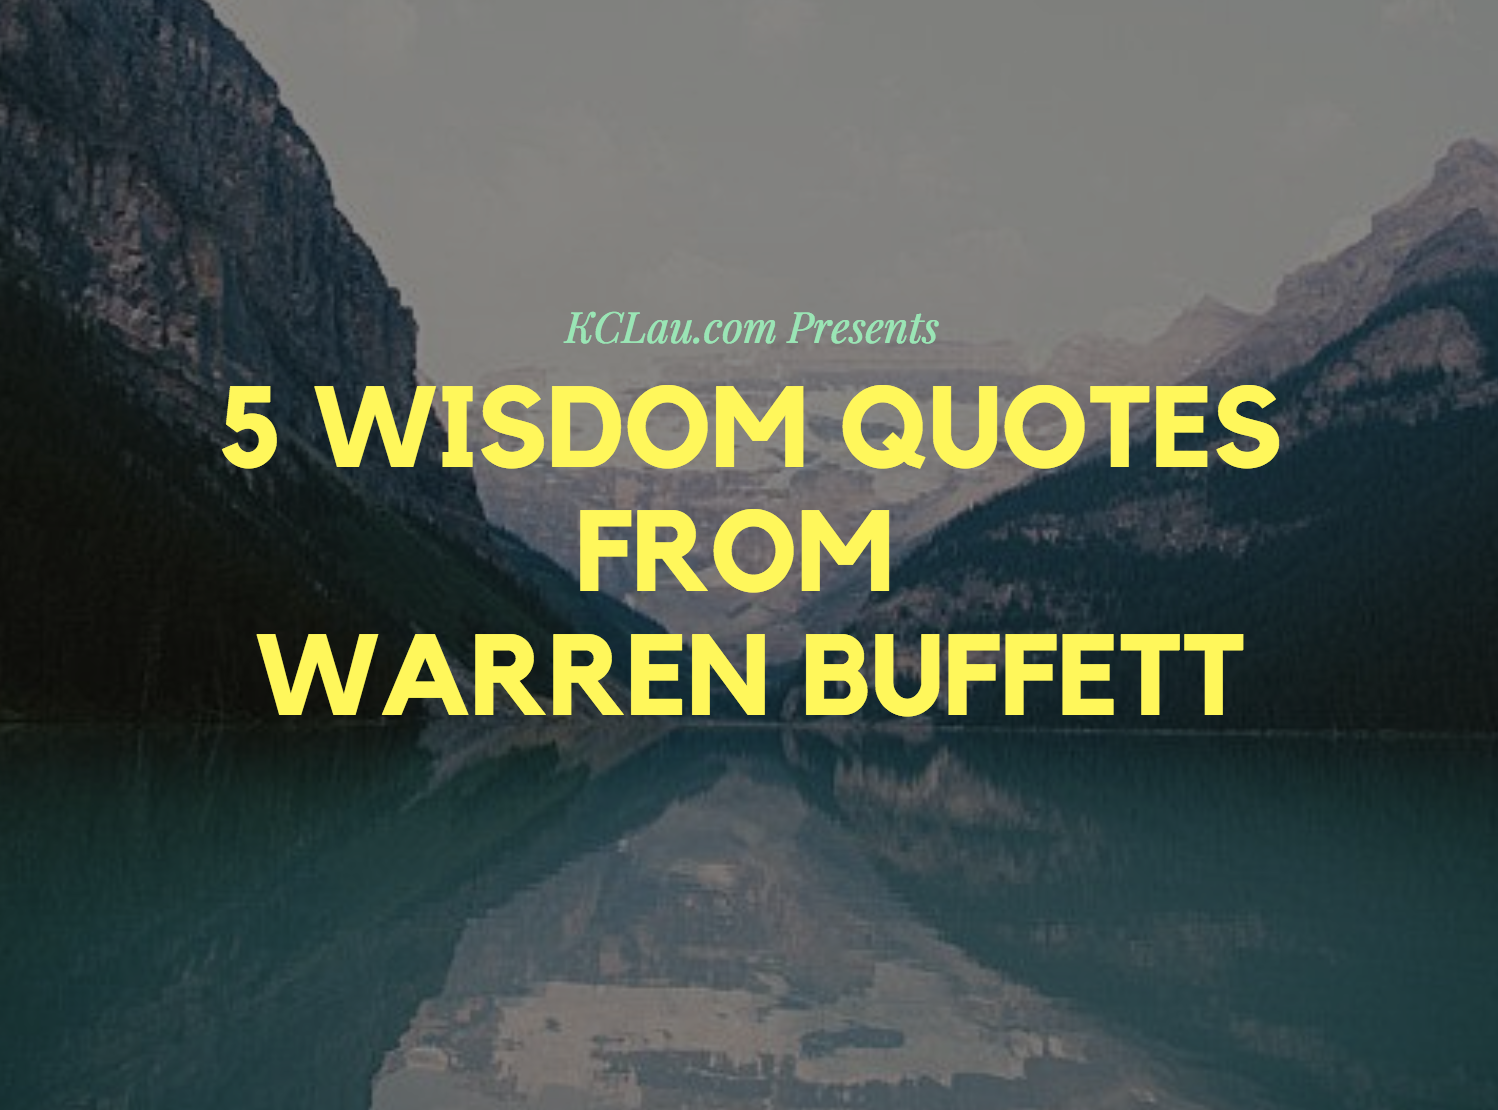 5 More Wisdom Quotes I Learnt  about Investing from Warren Buffett